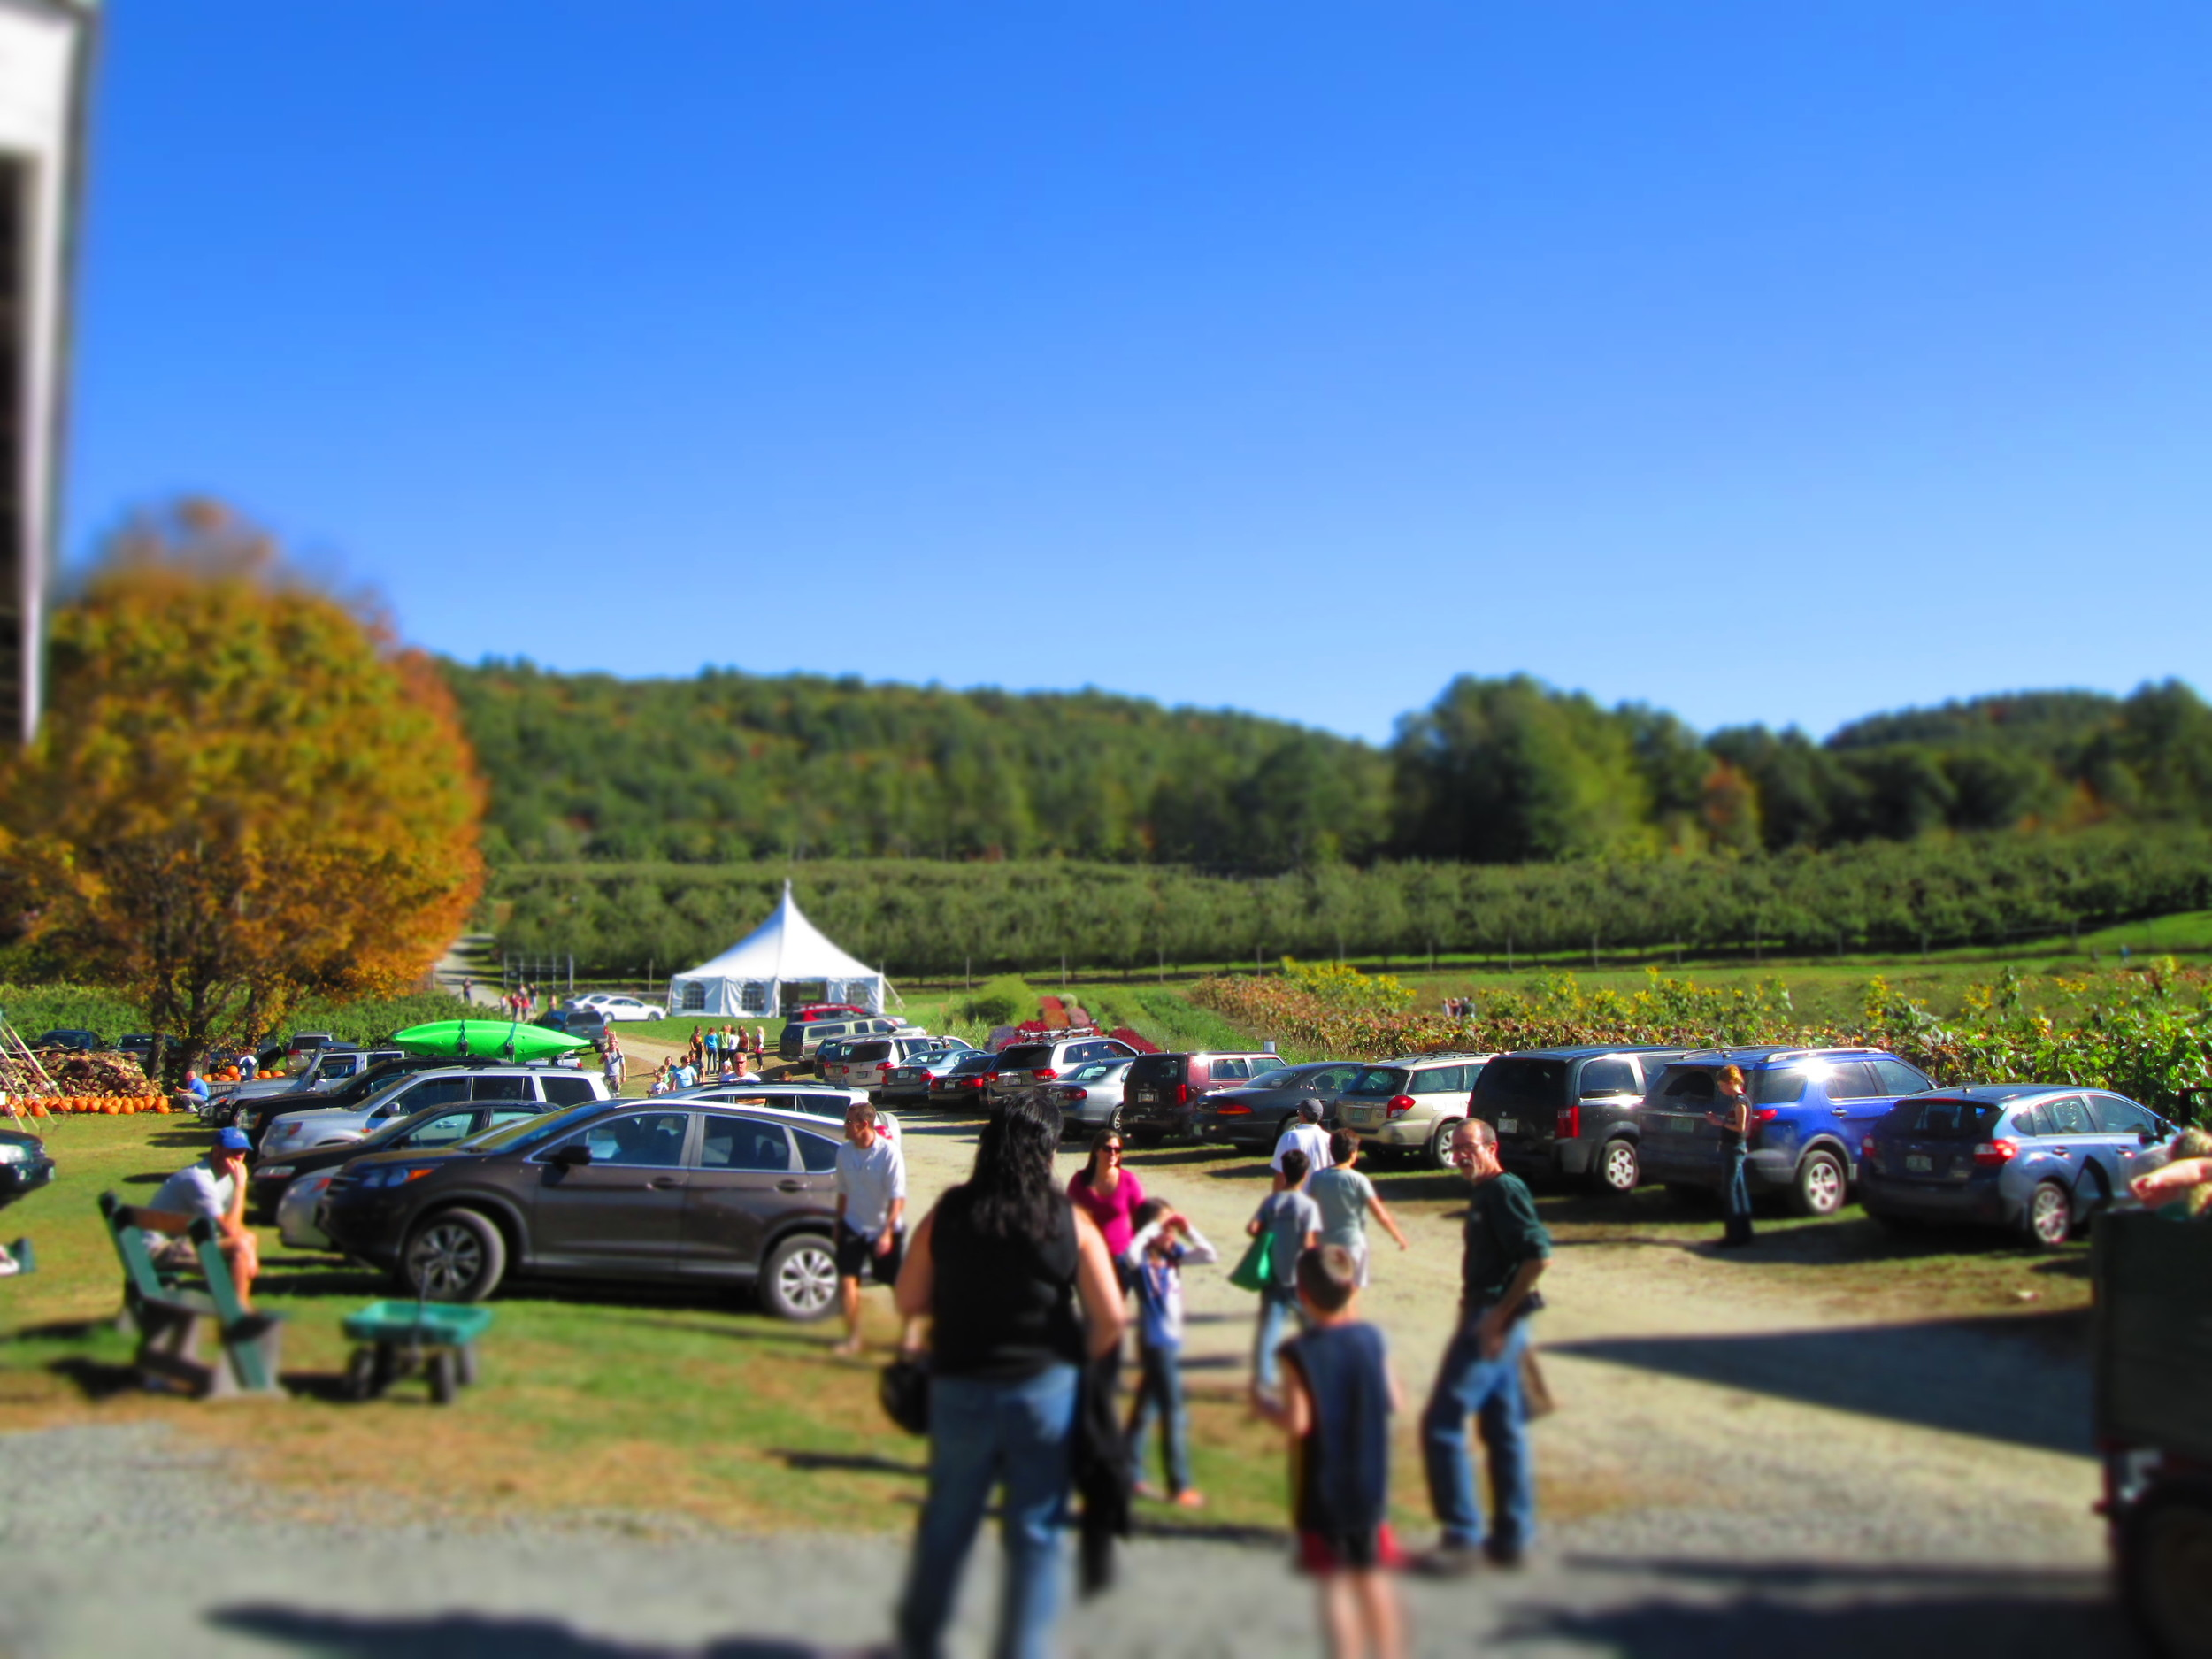 "Parking    We have ample onsite parking, all within easy walking distance to our barn store, pumpkin patch and corn maze.    Kid (and grownup) Safety     We are fortunate to have many guests here each weekend, and it's natural for everyone to be focused on getting outside and enjoying the open space and fresh air. To make this a safe visit for everyone, we ask that you keep a good eye on traffic, and particularly ""weather eye"" for the little ones who like to dart about."